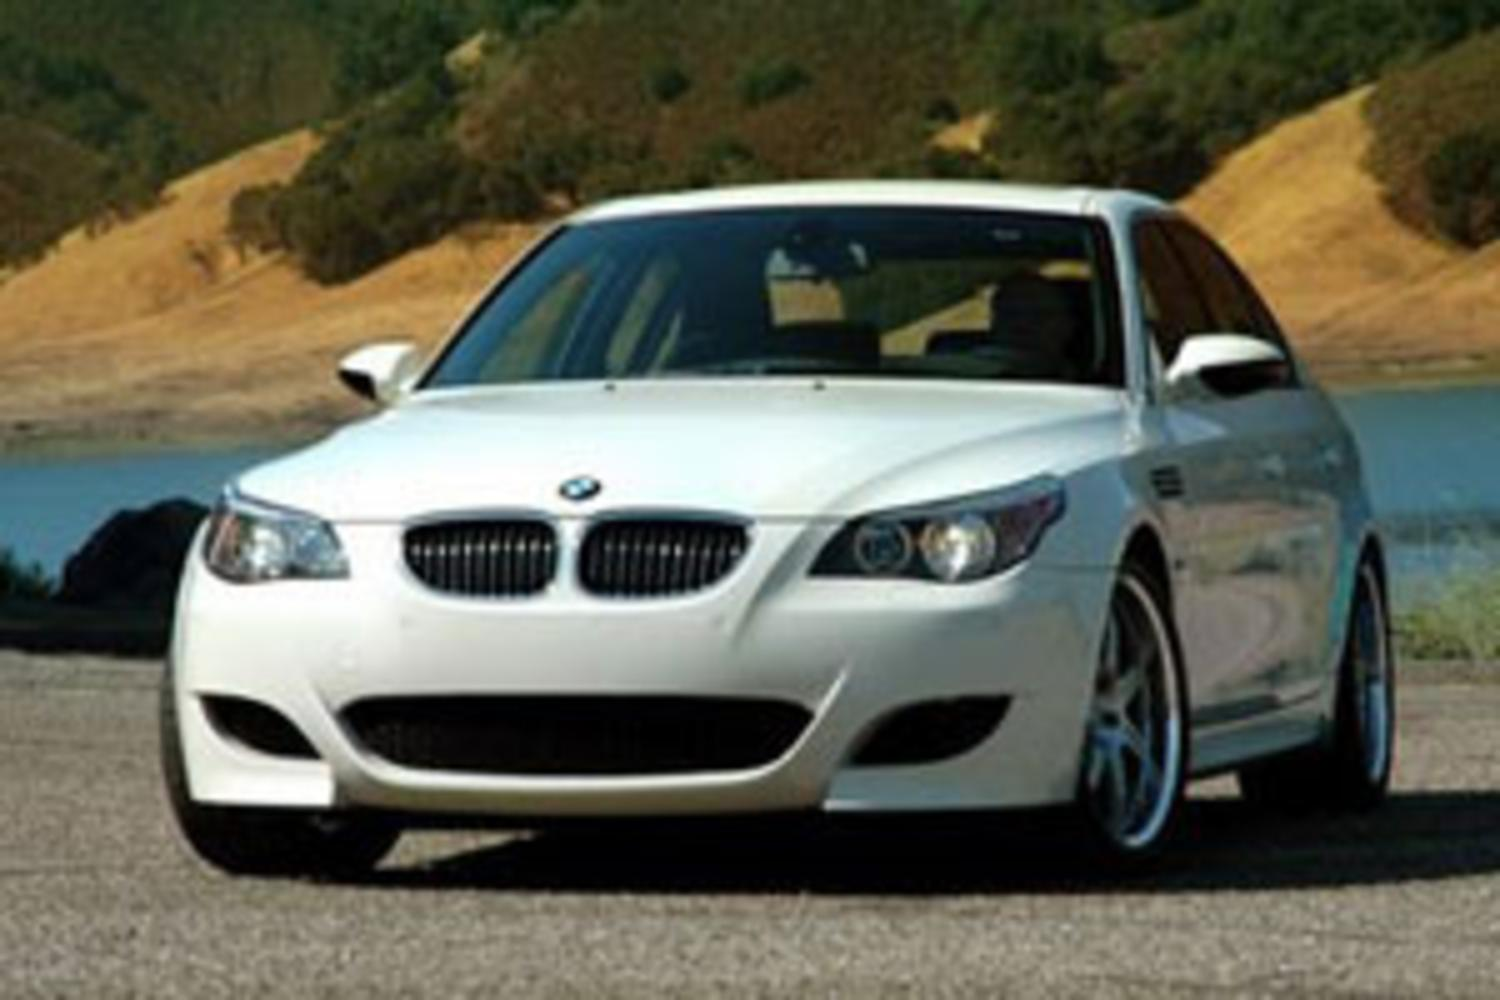 All Bmw Cars Cars Wallpapers And Pictures Car Images Car Pics Carpicture